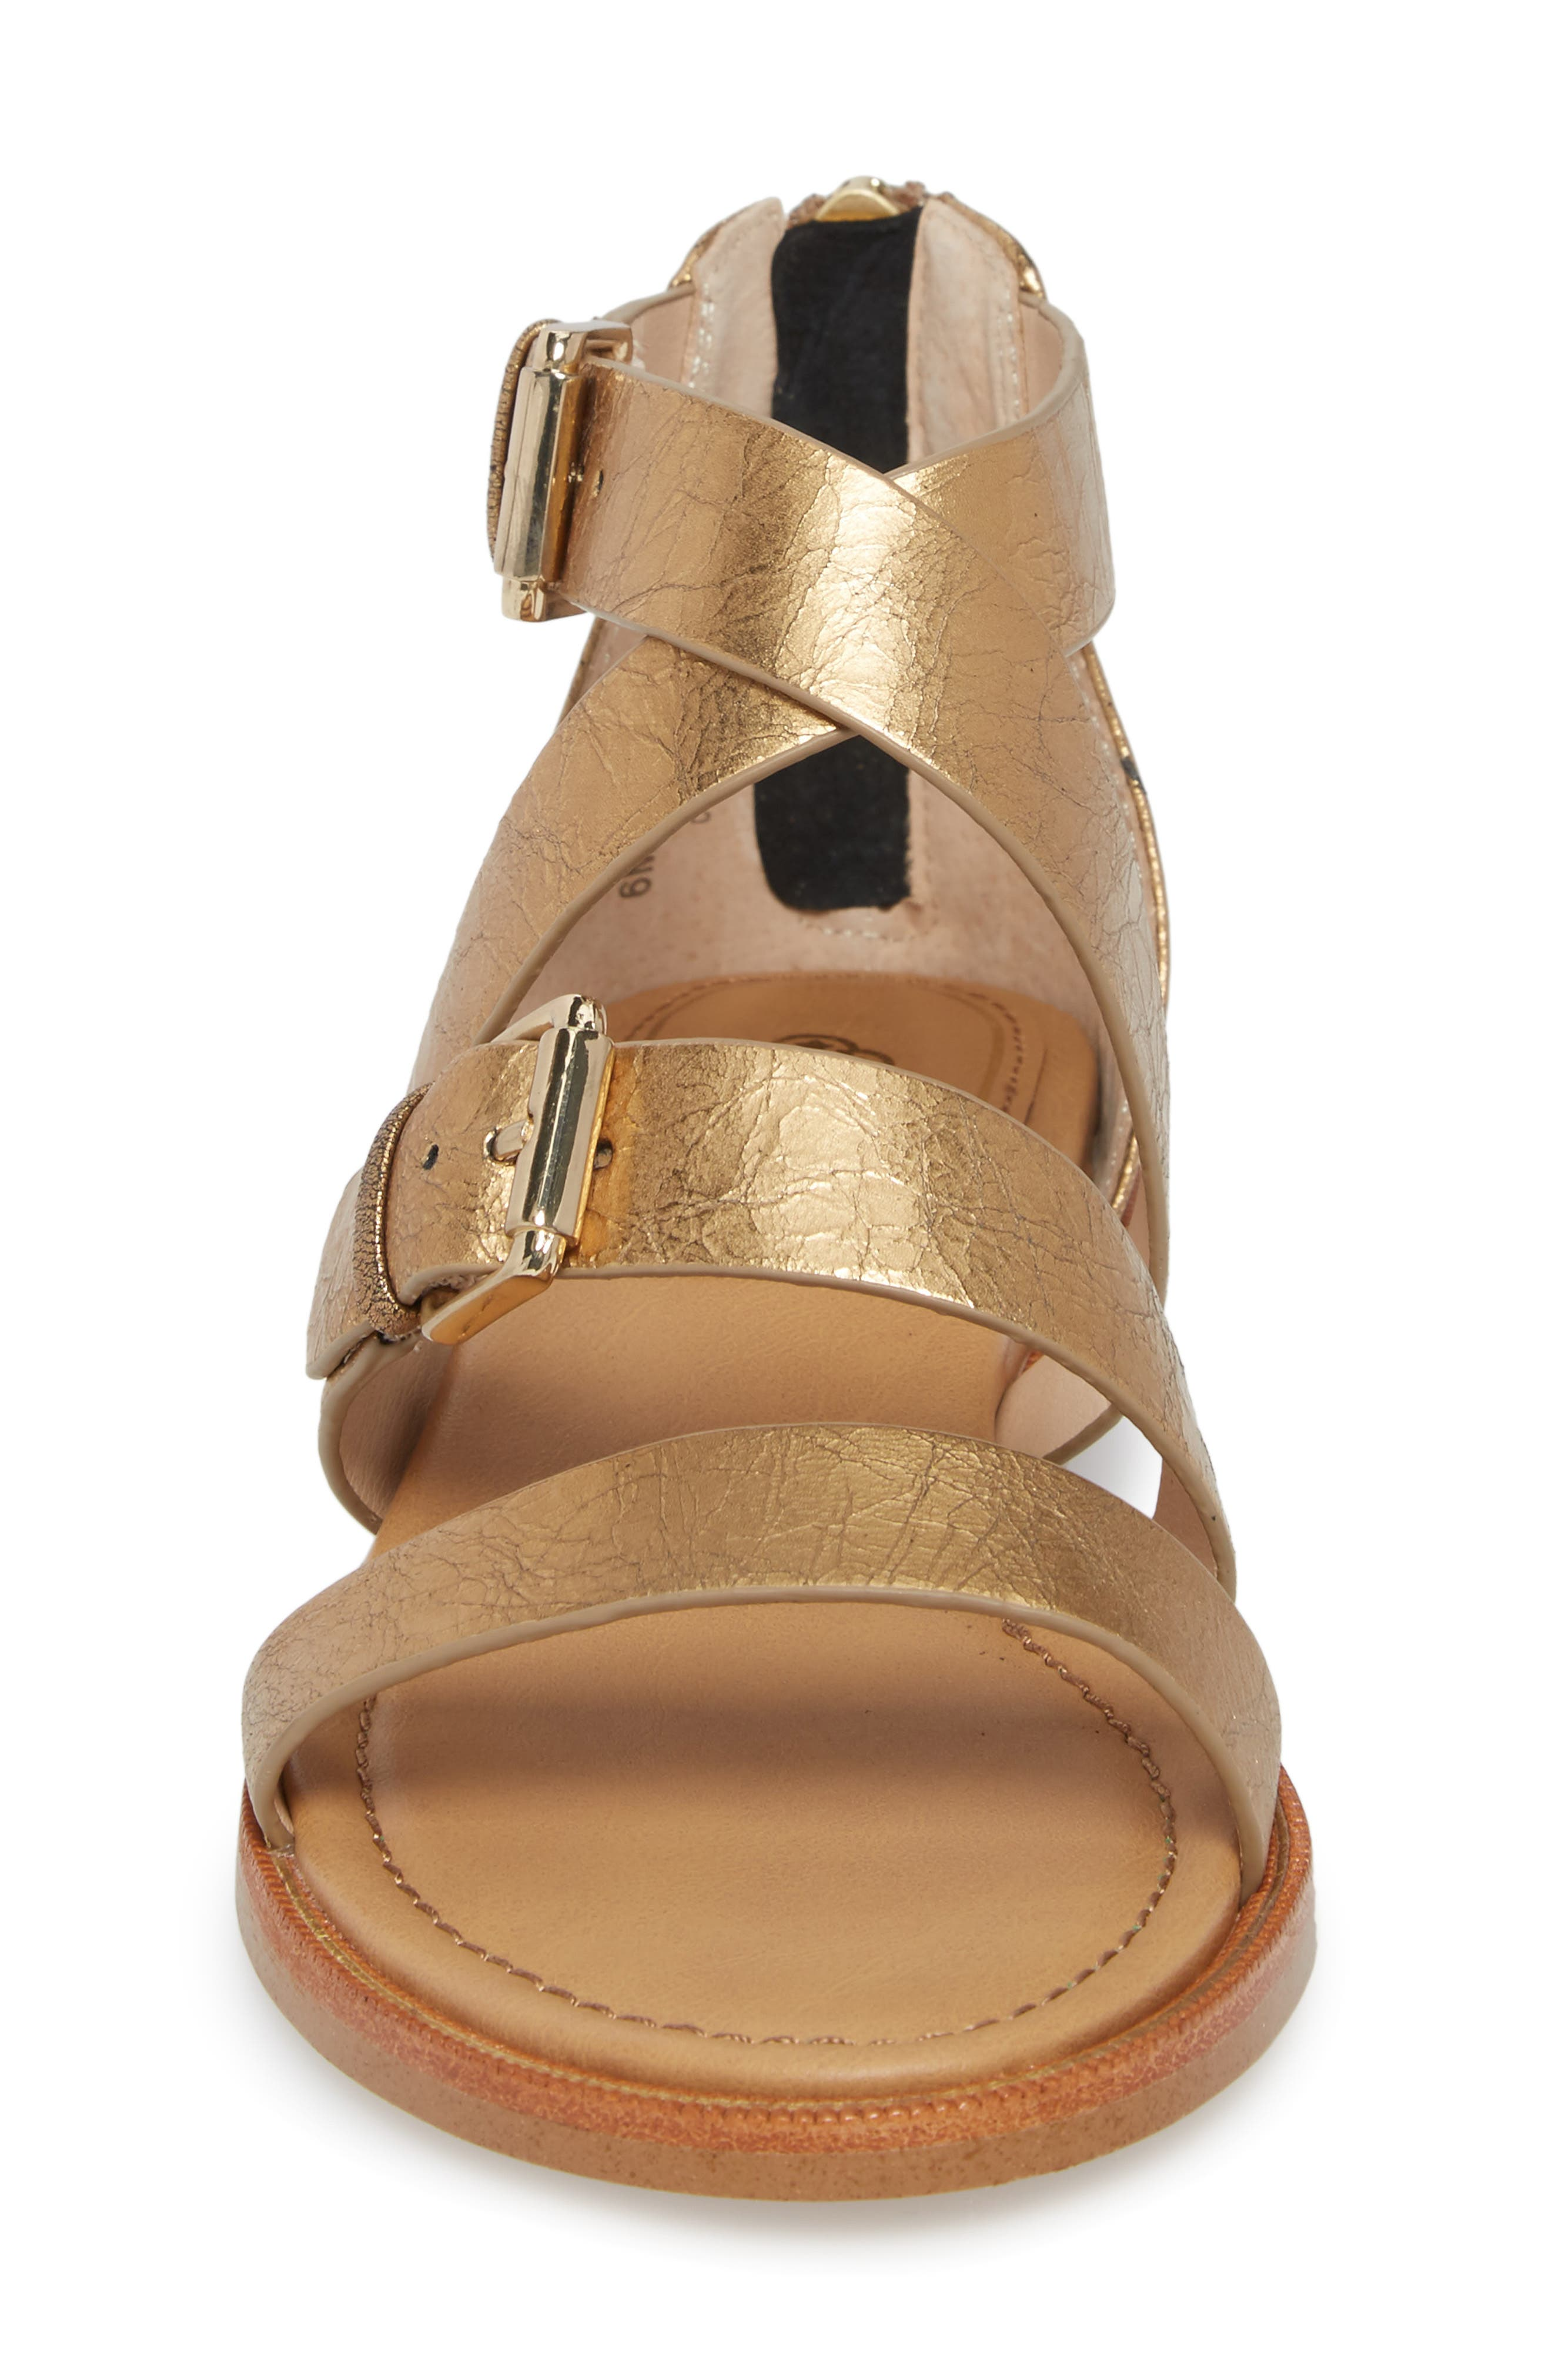 Isola Sharni Sandal,                             Alternate thumbnail 4, color,                             Old Gold Leather